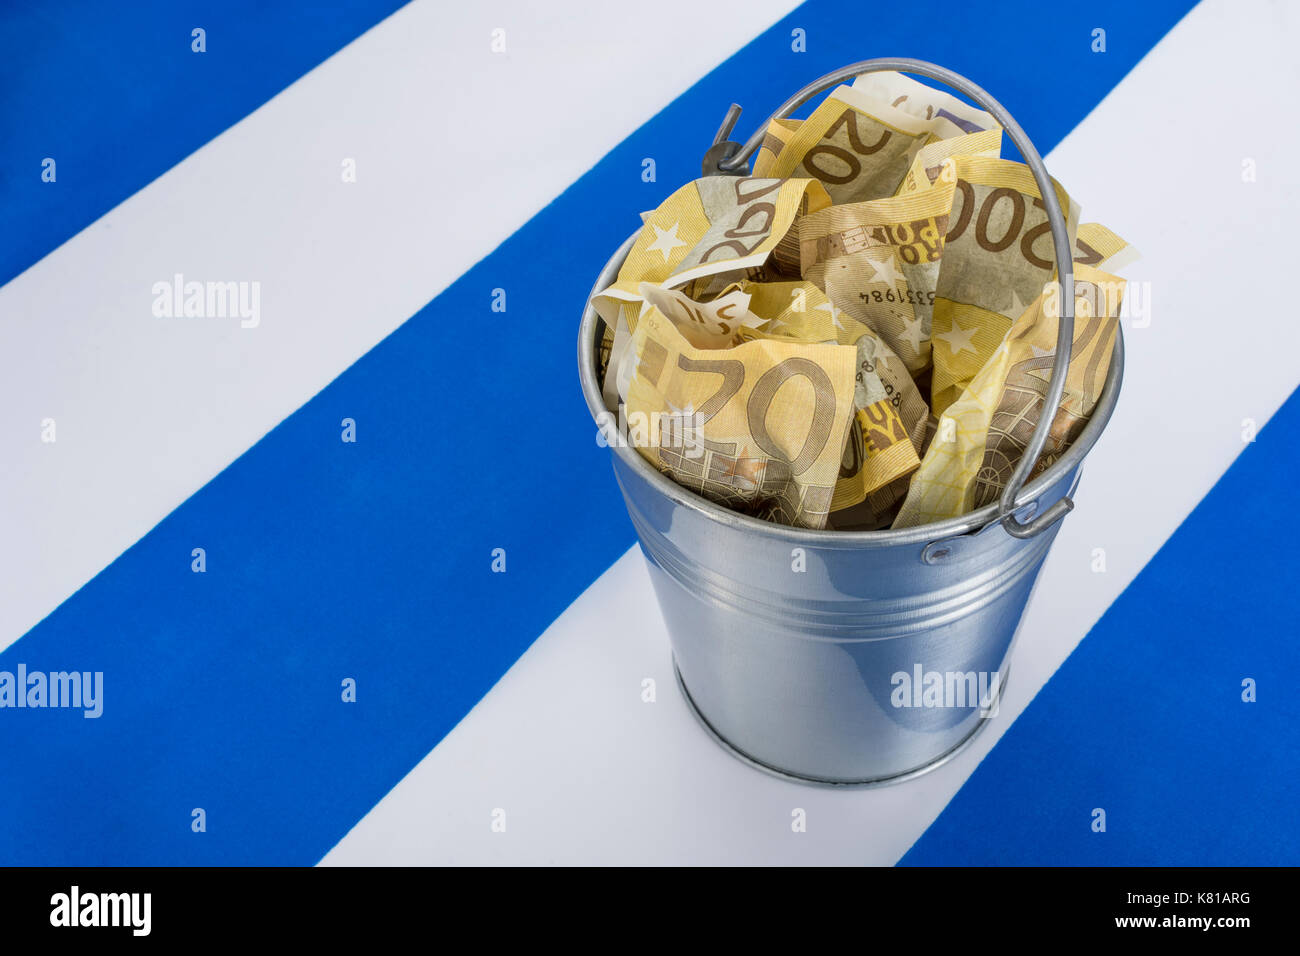 Greek flag with a metal bucket of 200 Euro banknotes - as metaphor for the Greek financial crisis and bailout, Greek debt relief. - Stock Image